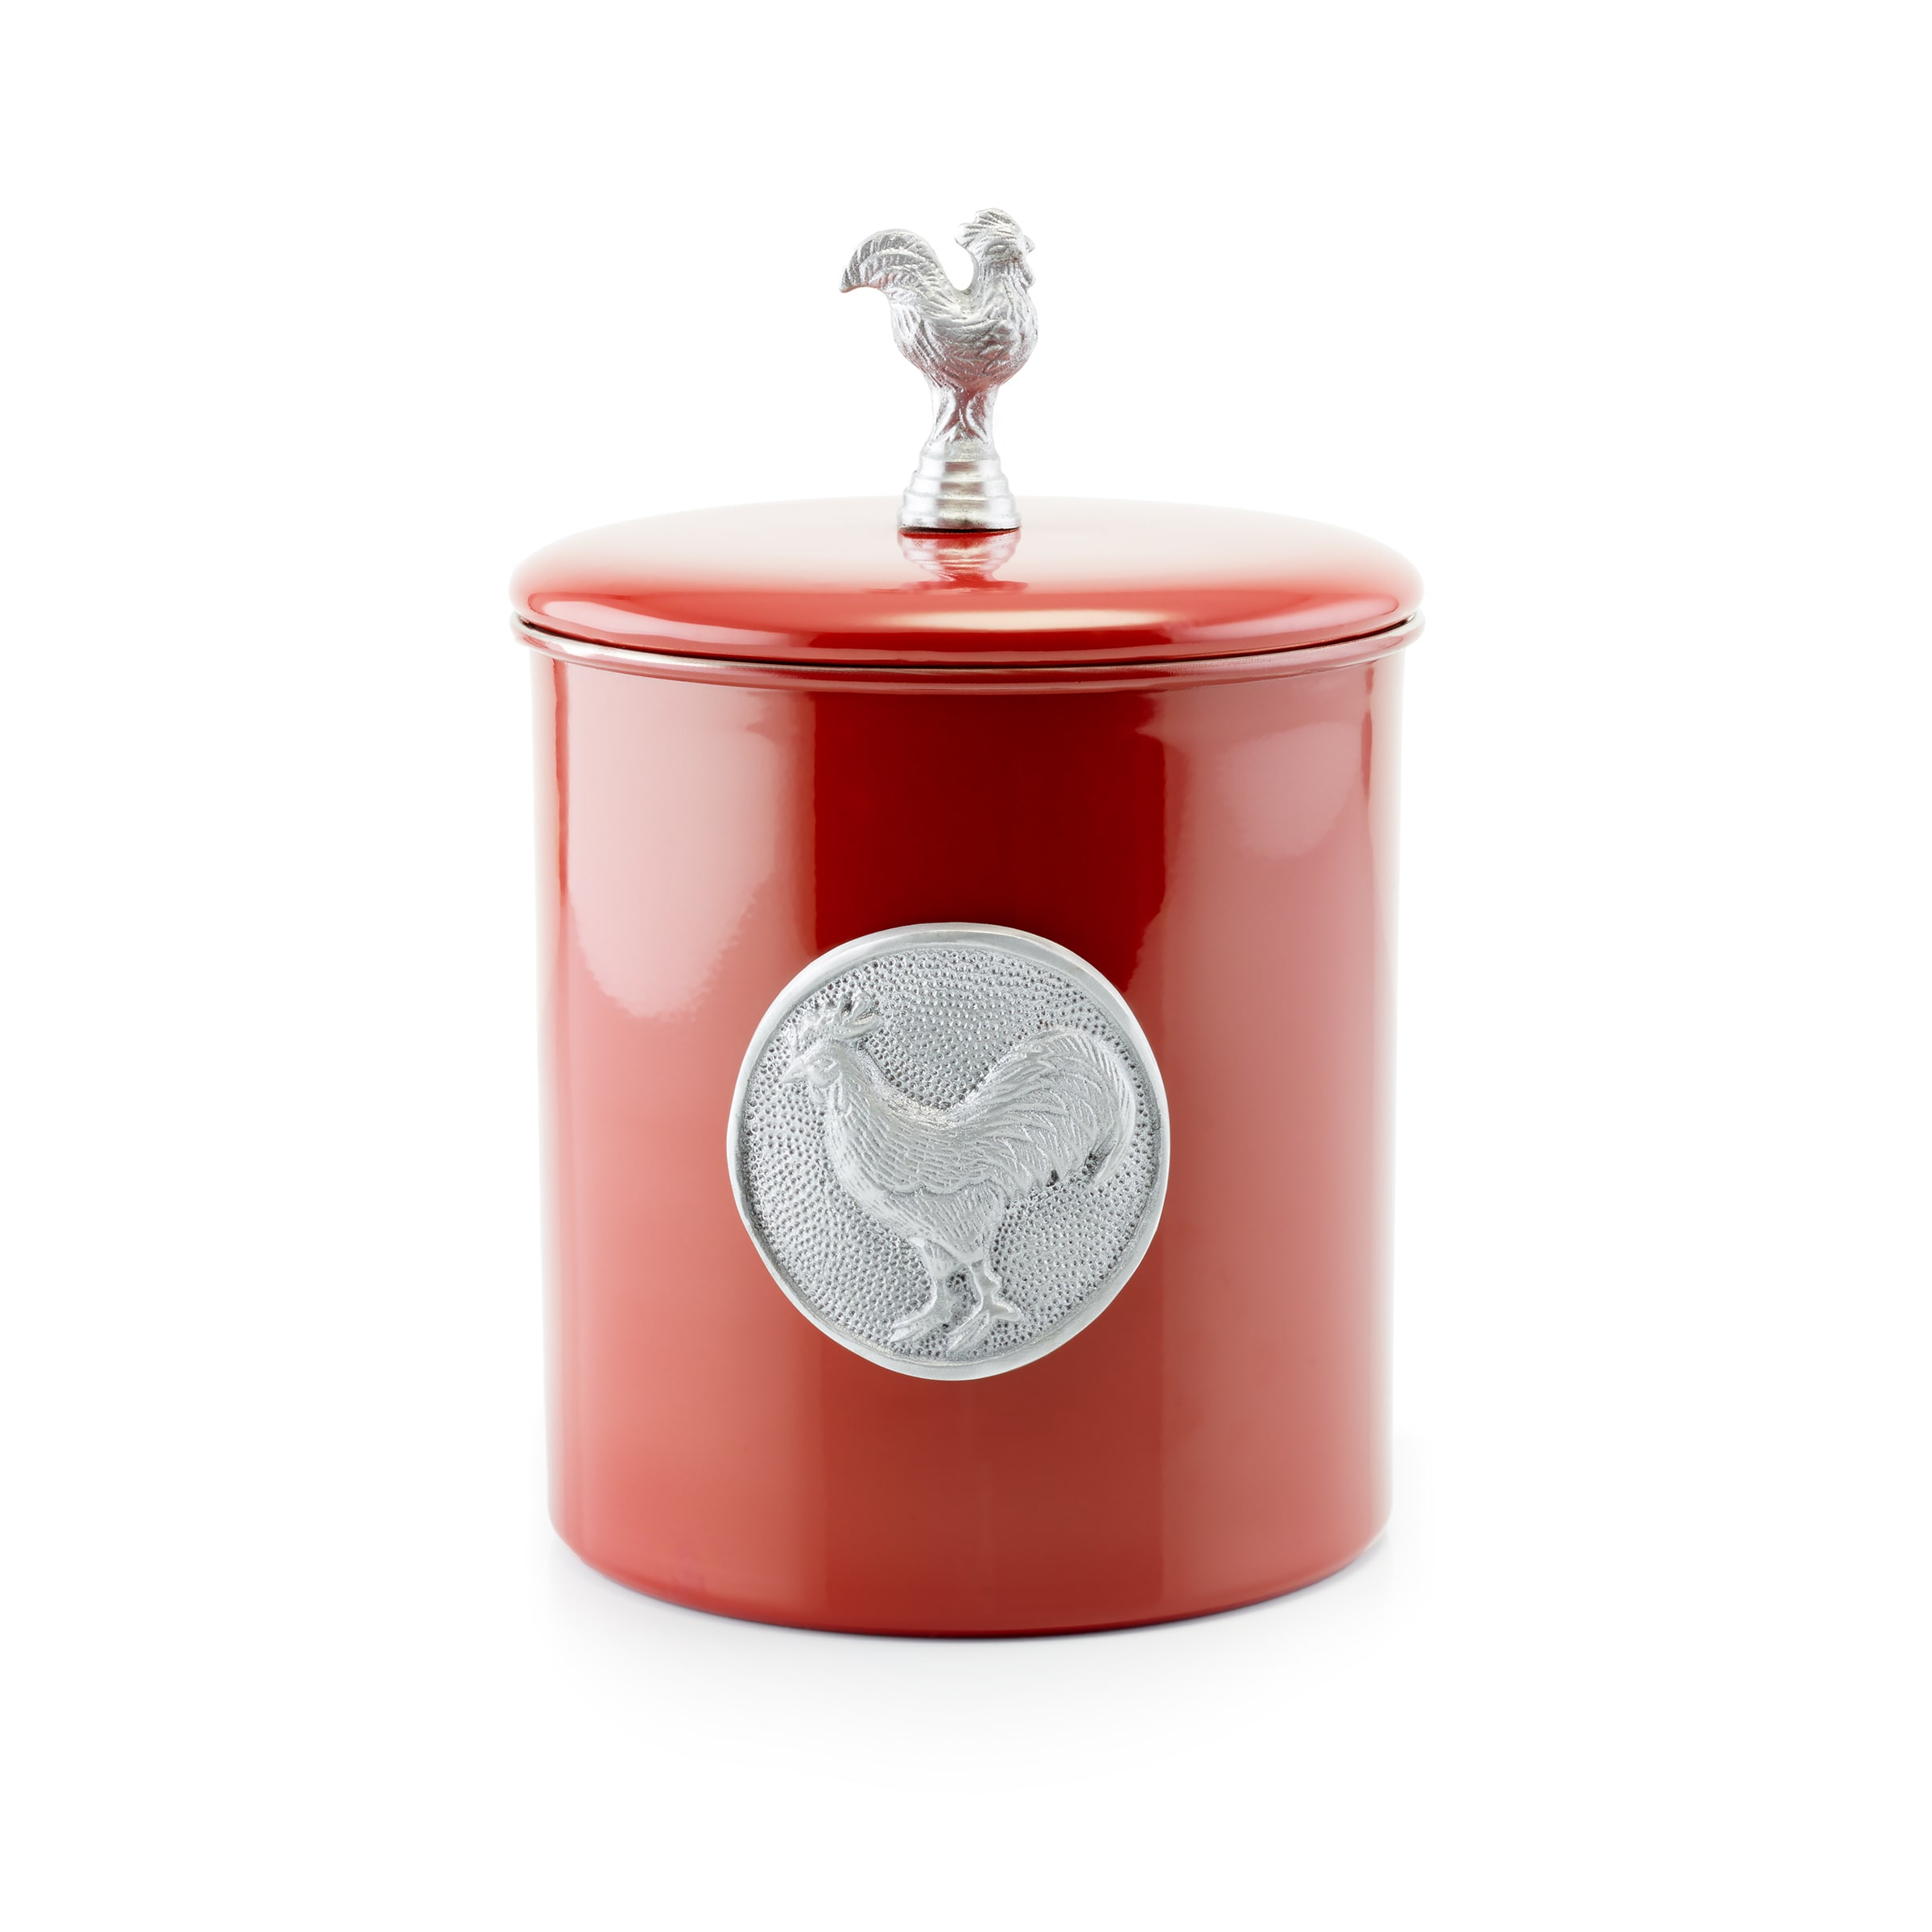 Old Dutch Red Rooster Silver Stainless Steel 4-quart Fres...